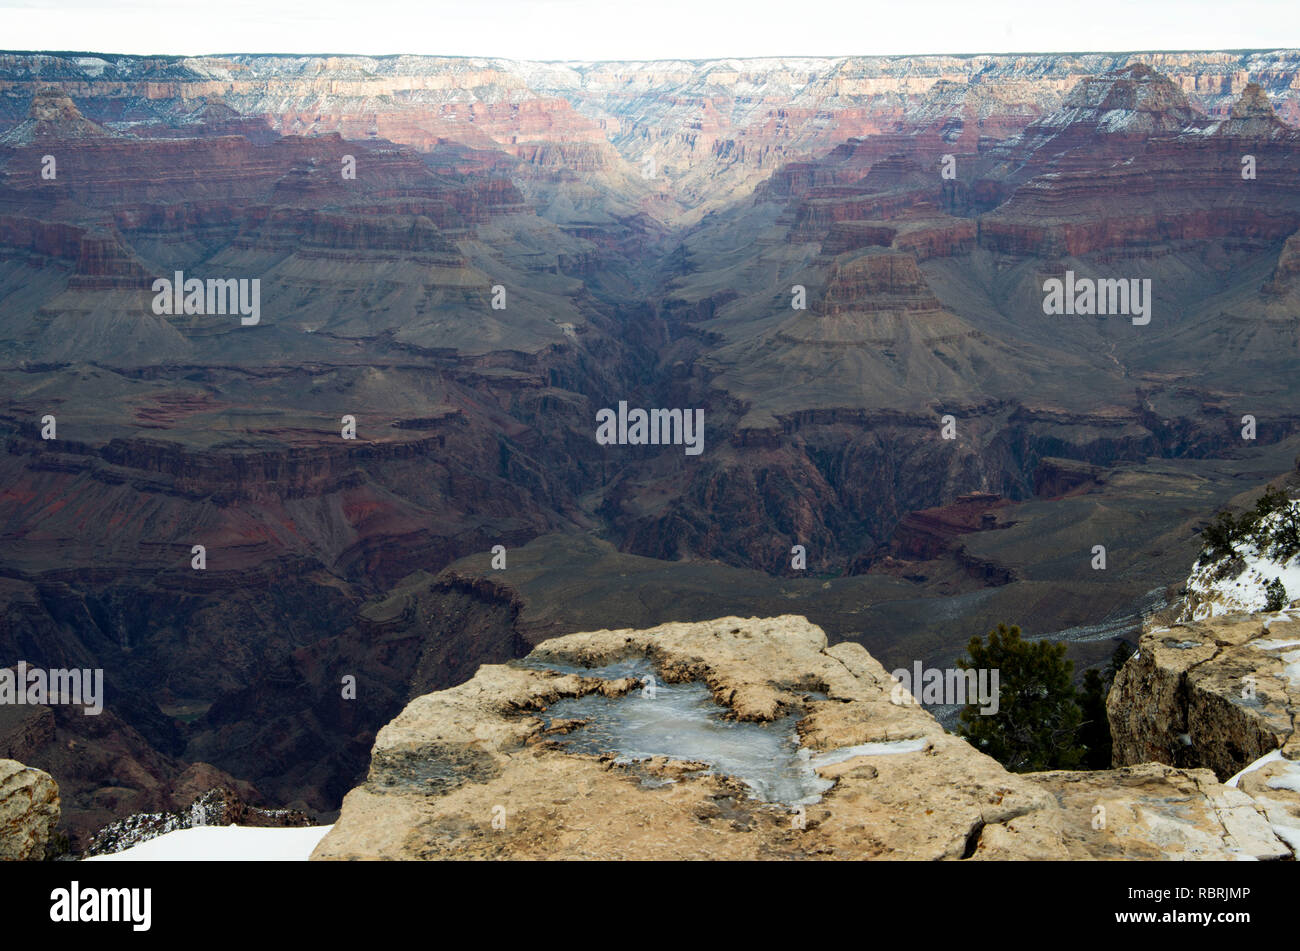 The South Rim Trail of the Grand Canyon offers excellent views of the canyon, but winter ice can make areas slippery. - Stock Image